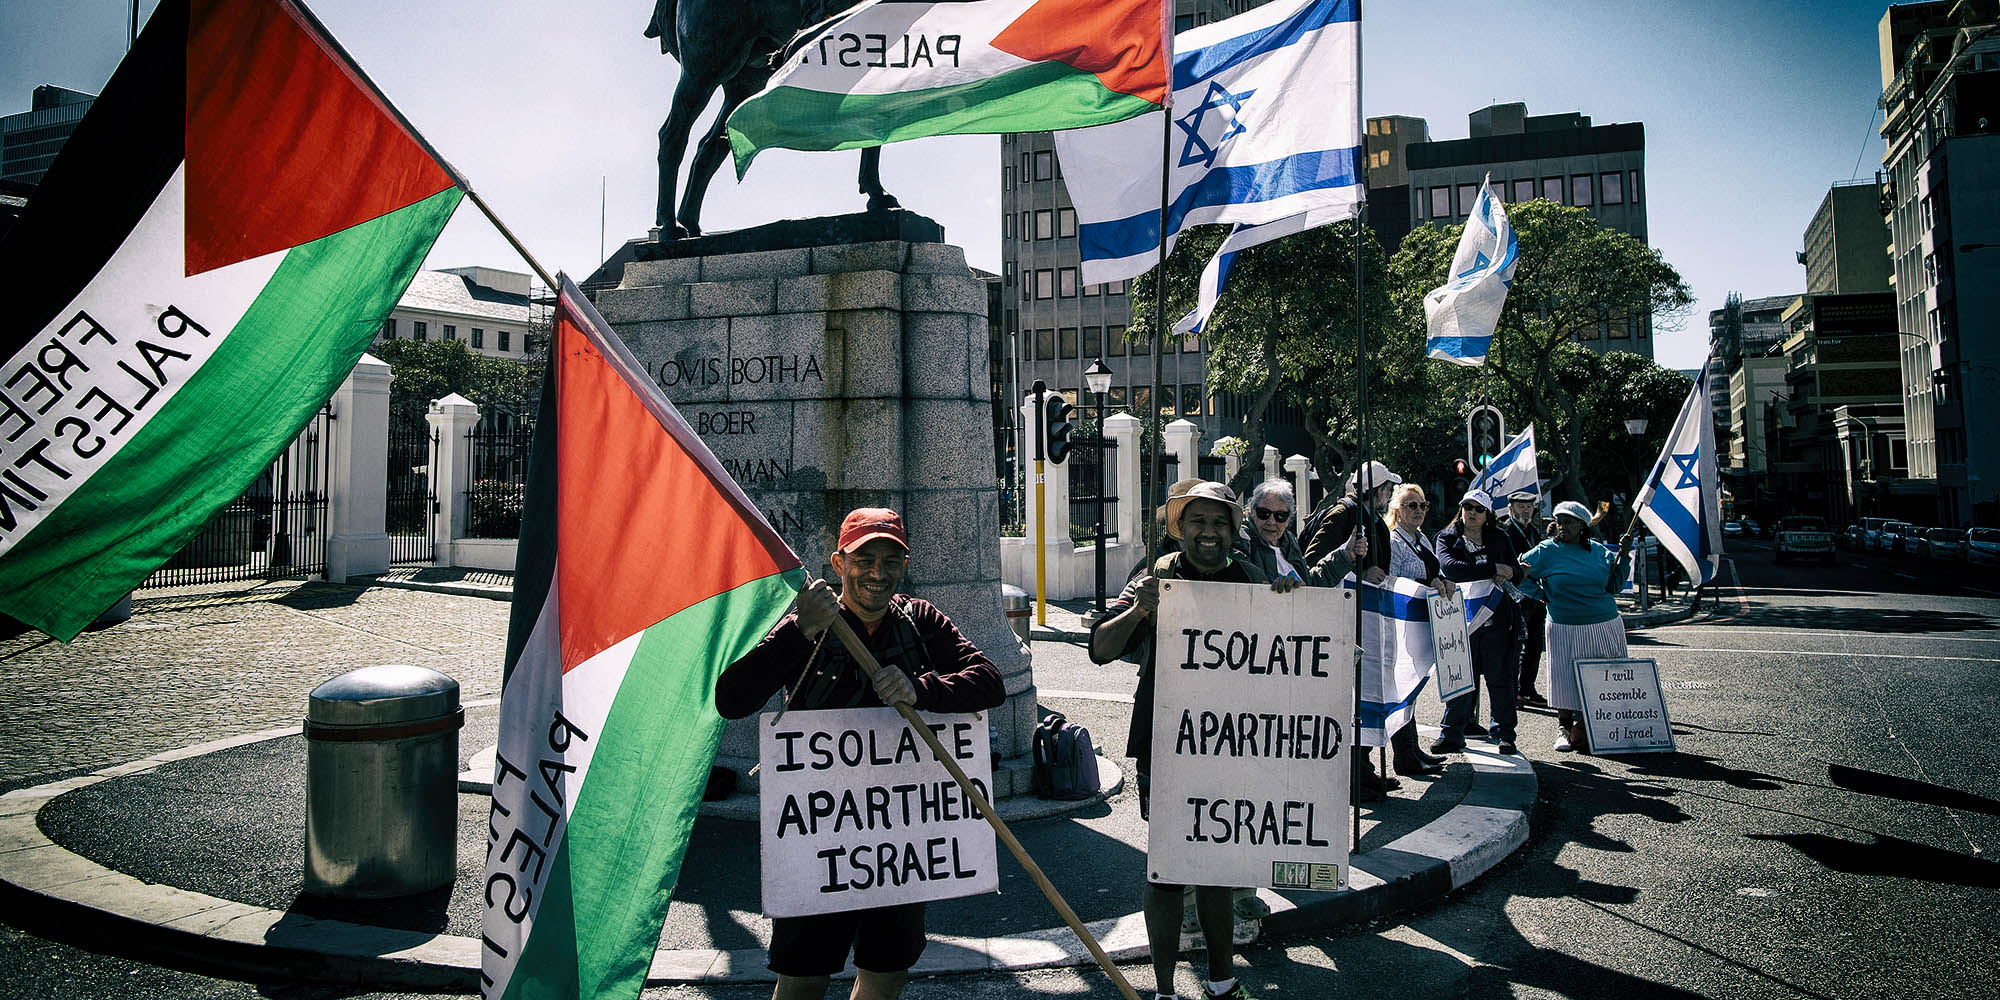 Letter to the Editor: 'South Africa has an opportunity to reset its Israel-Palestine bias'